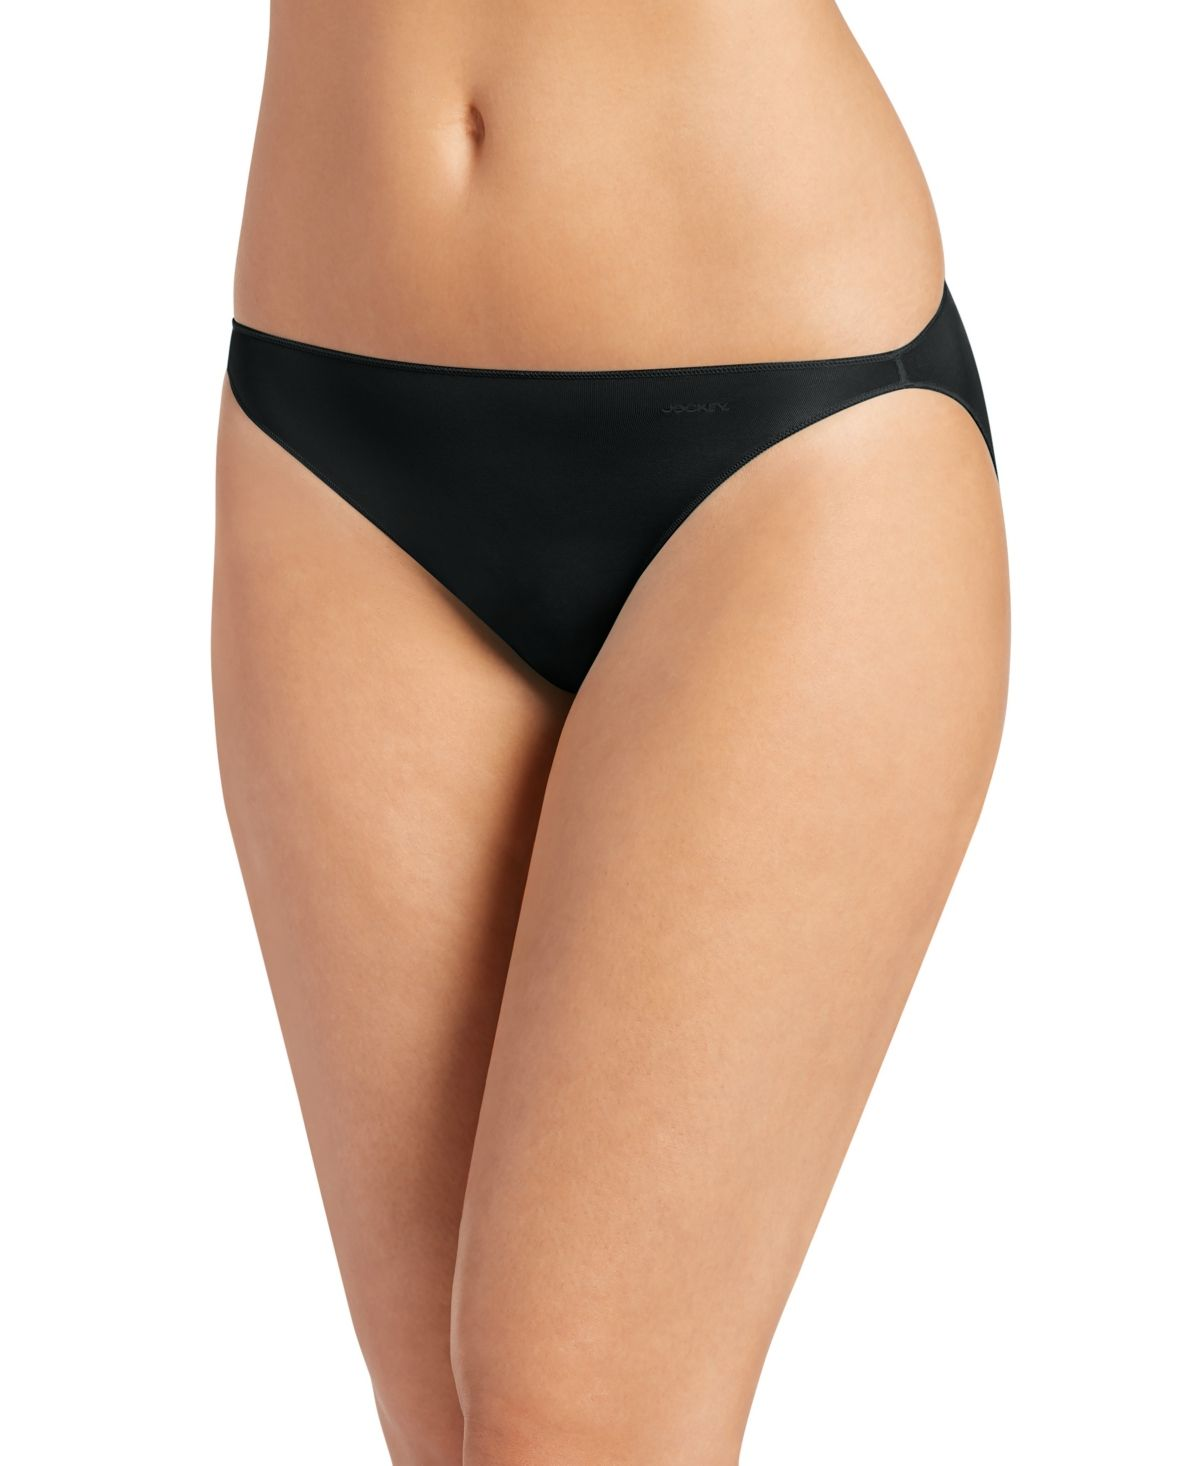 Panties For Women Briefs Underwear Shorts Sexy But Classy Dresses